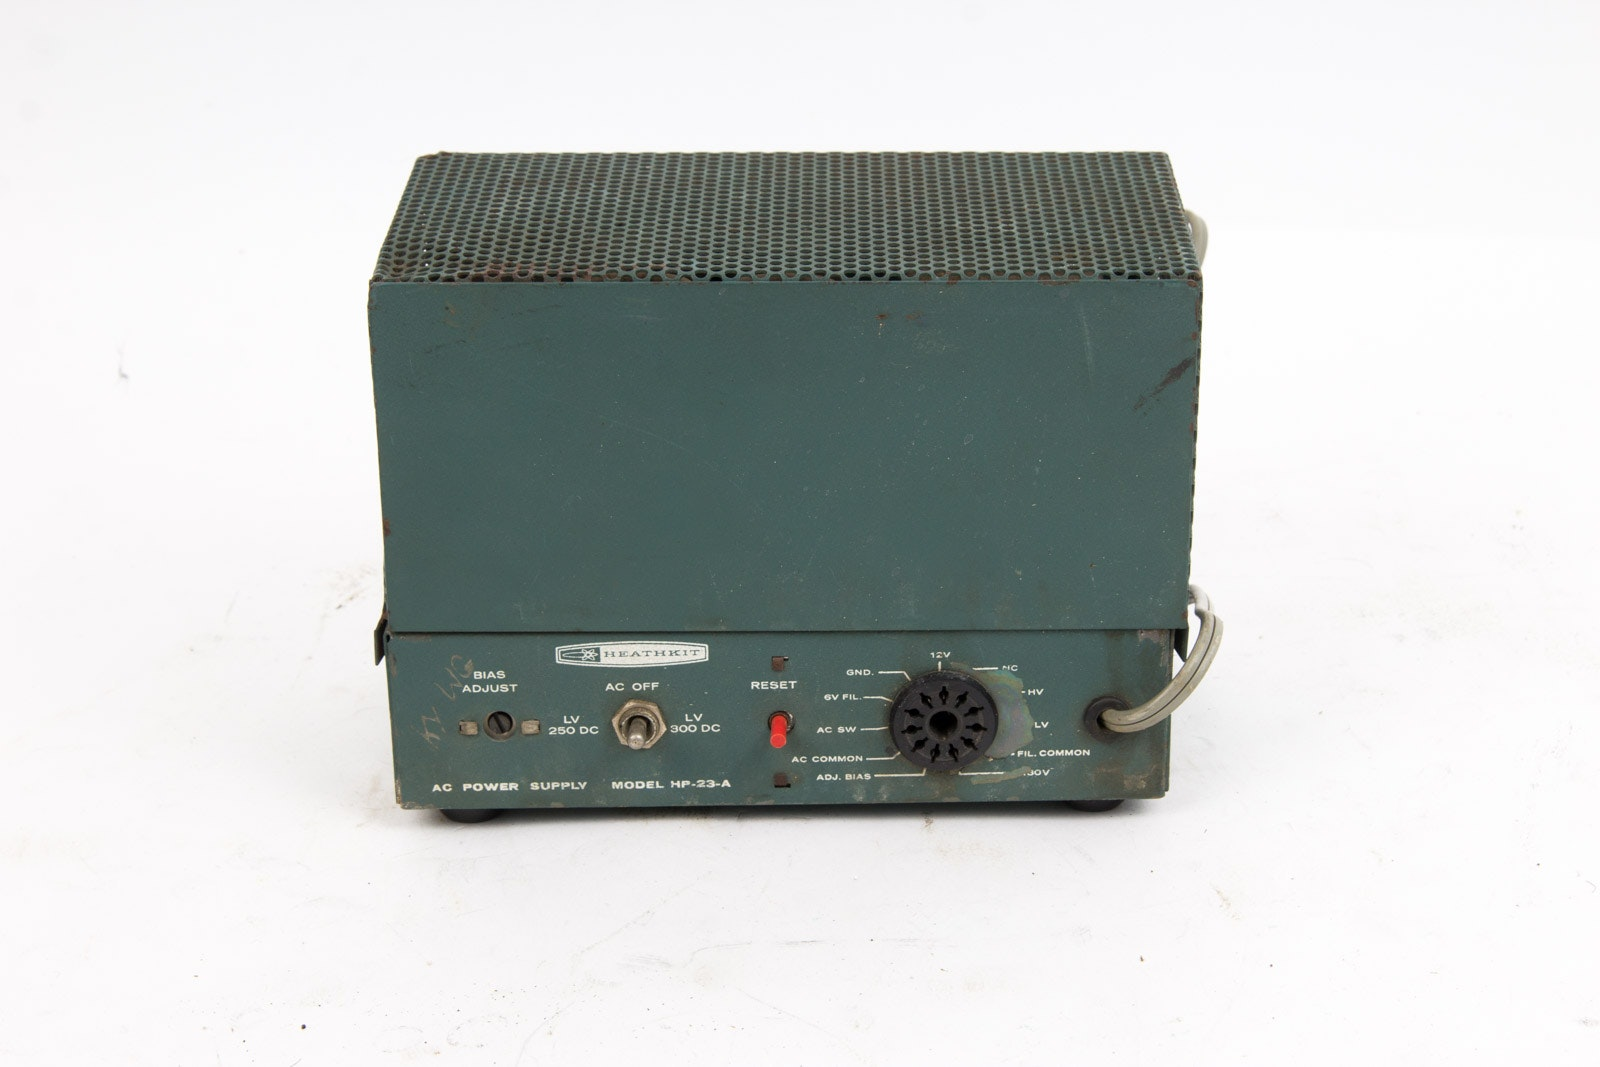 Heathkit HP-23-A AC Power Supply